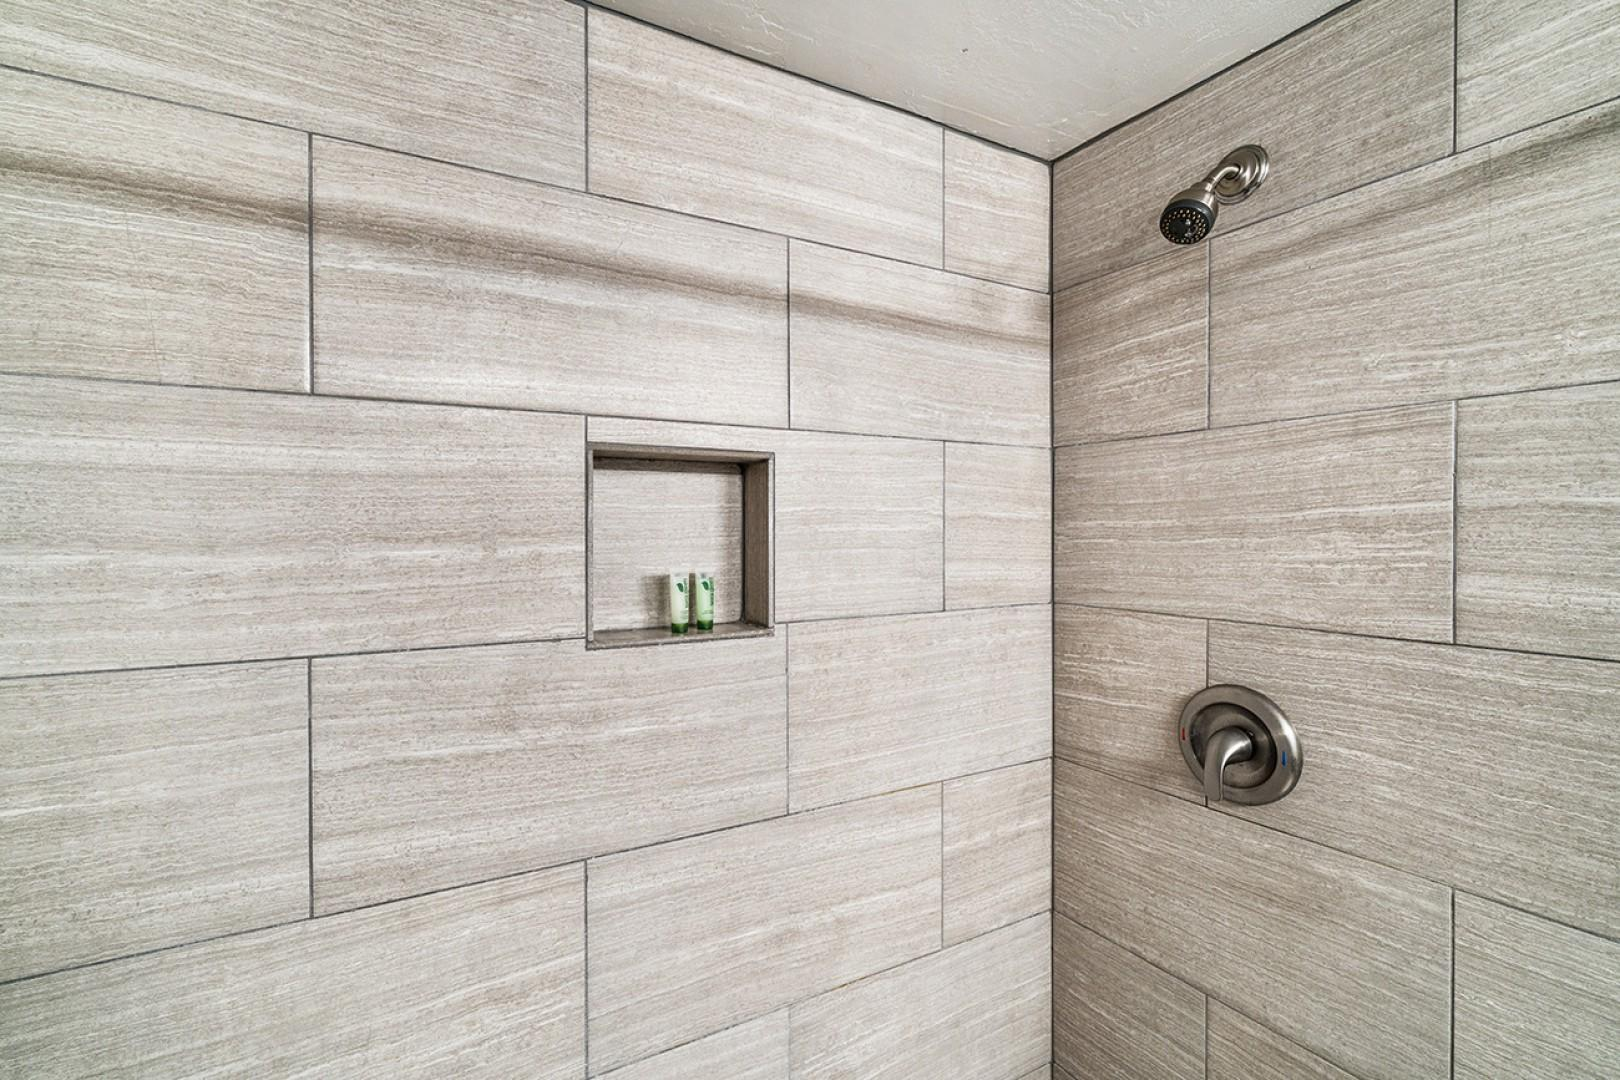 Master ensuite tiled shower